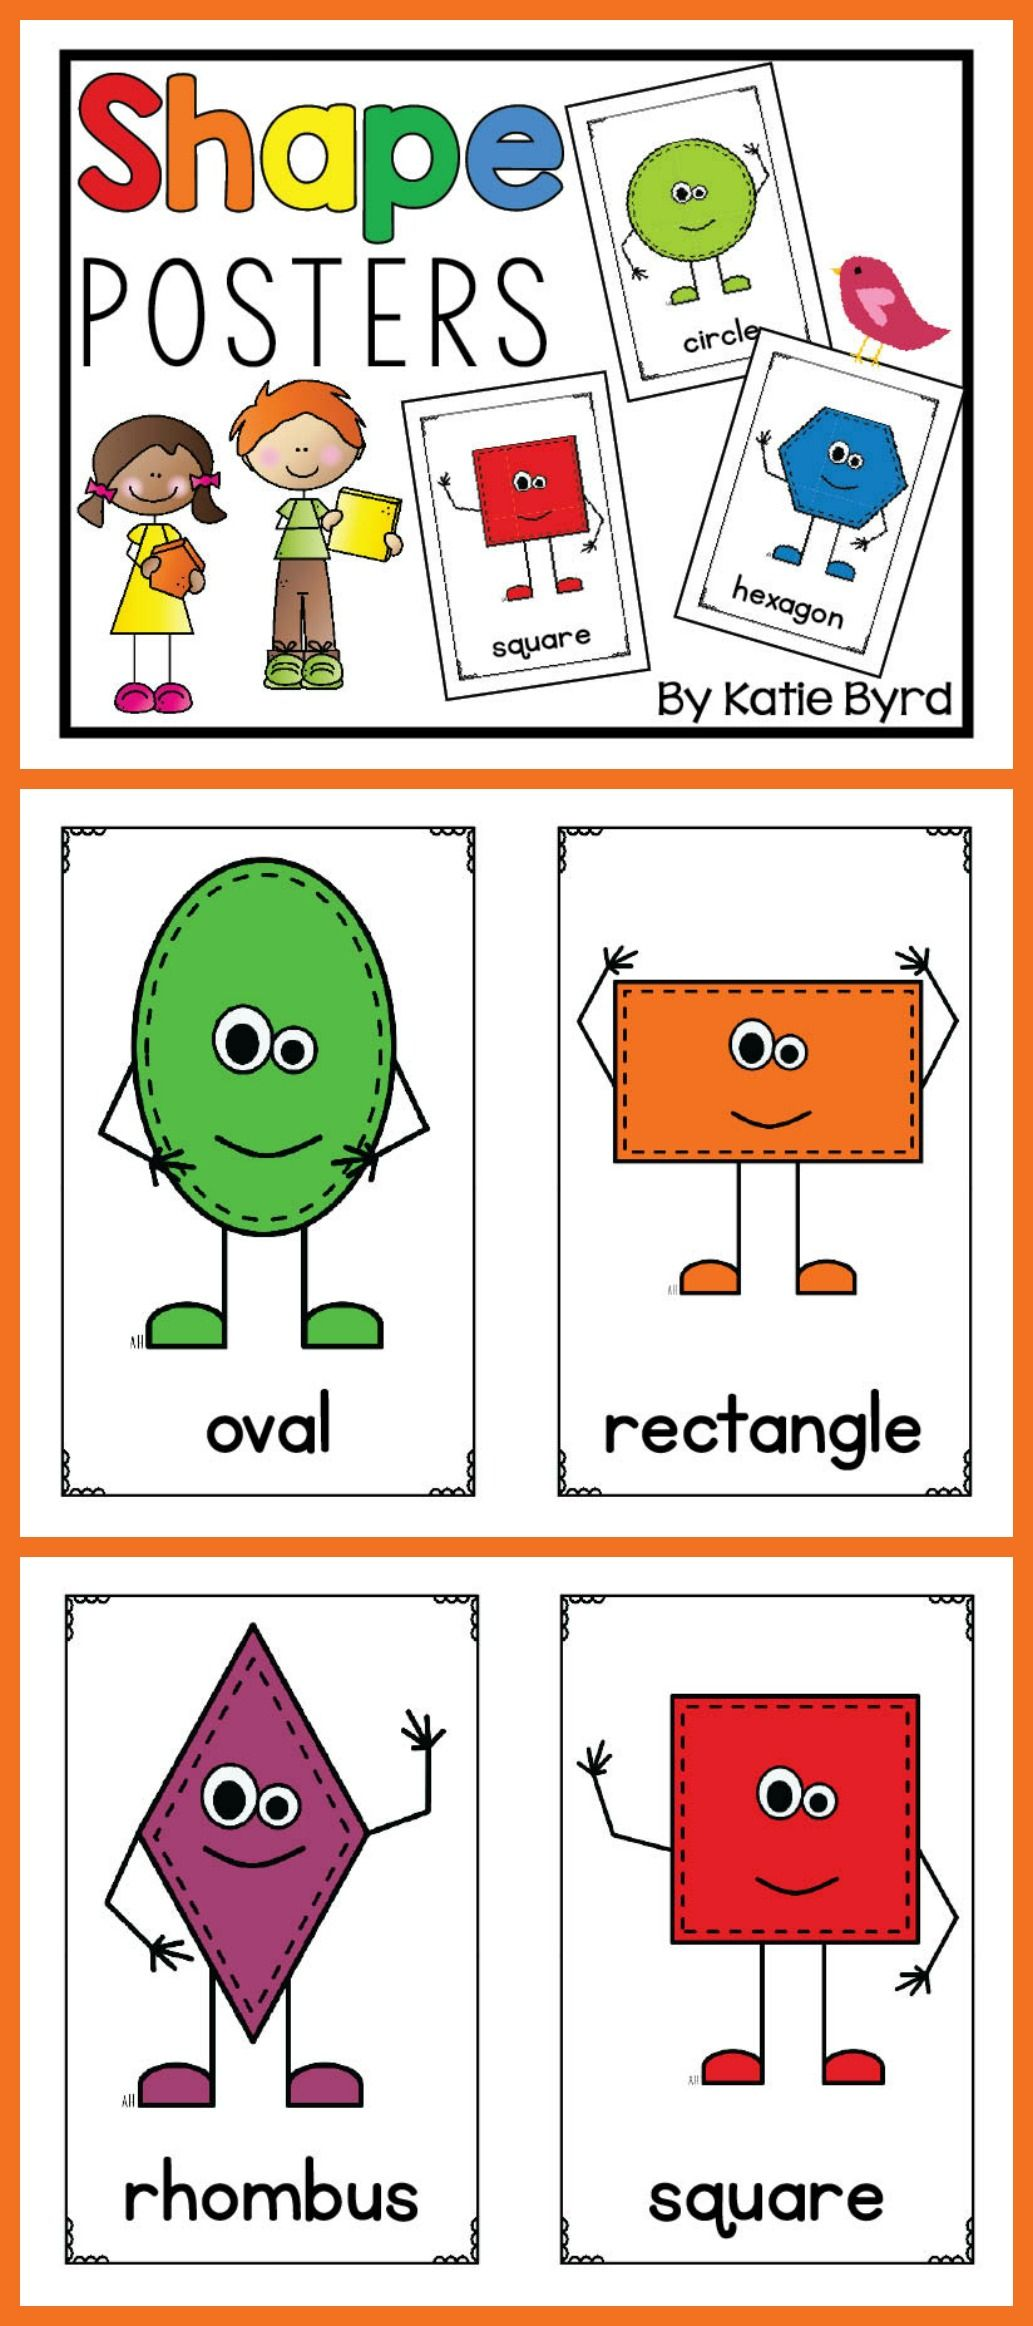 Shapes Posters For Bulletin Boards And Classroom Decor Shapes Preschool Shape Posters Preschool Classroom [ 2326 x 1033 Pixel ]